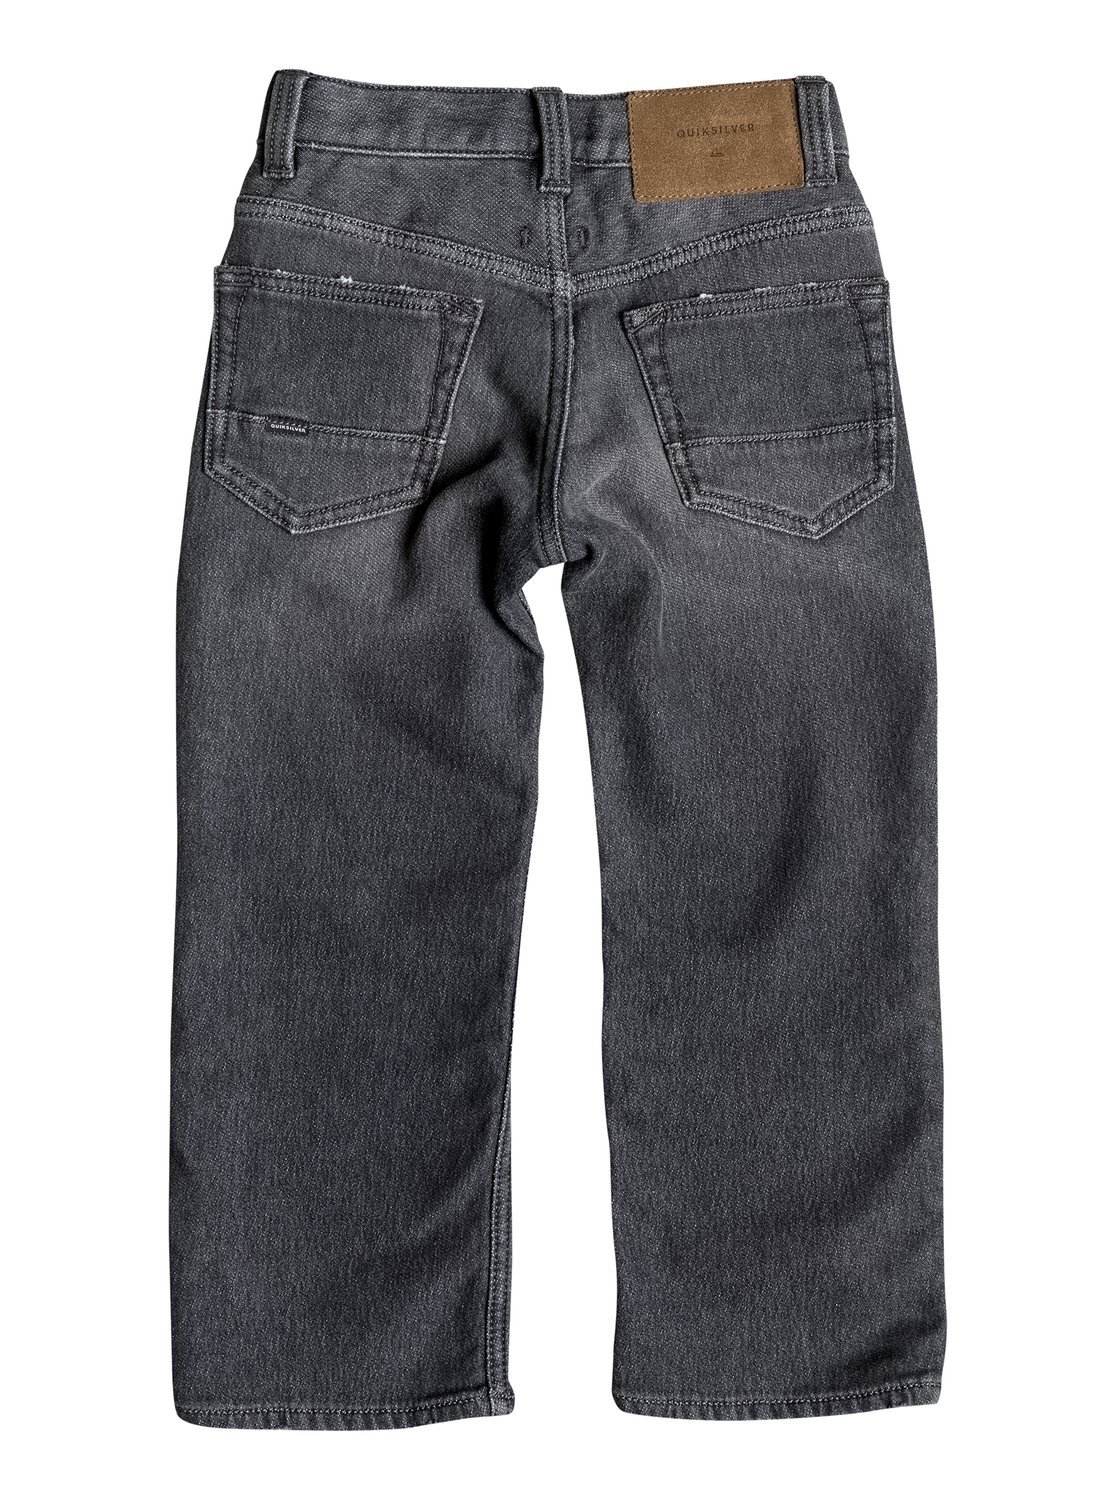 Quiksilver Sequel Grey Damaged – Vaqueros Corte Regular para Niños EQKDP03046